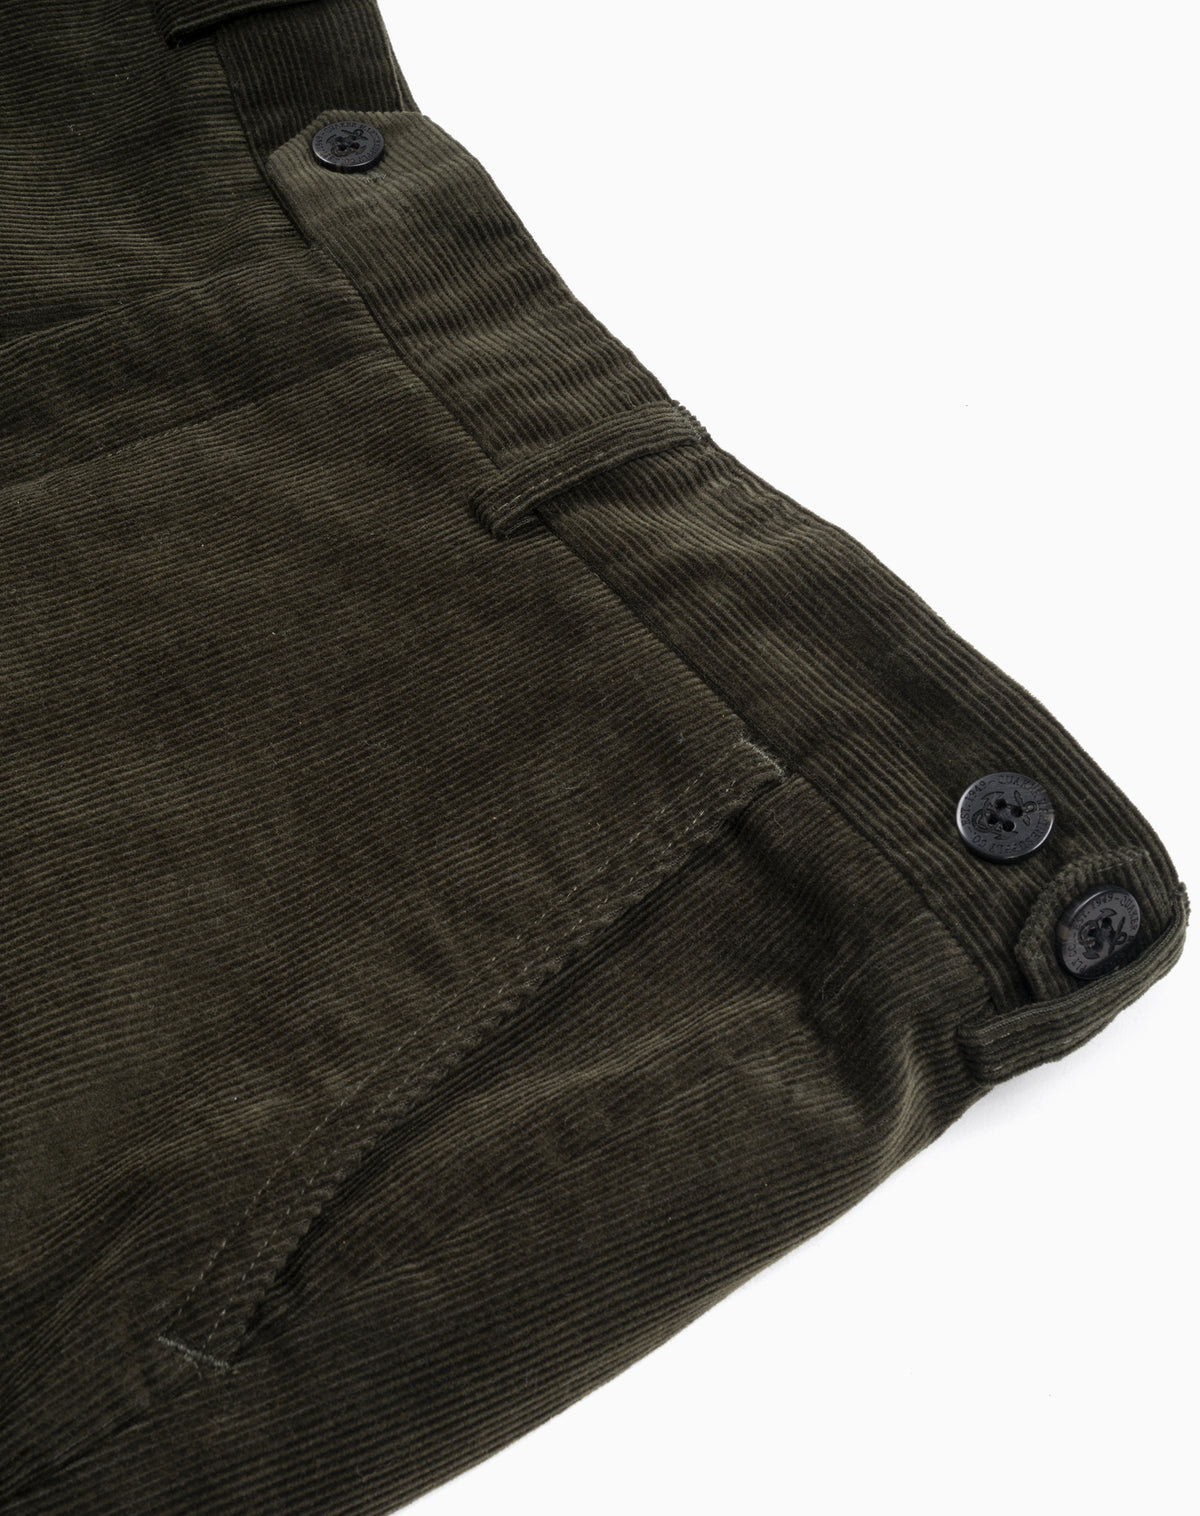 Gates Corduroy Pant in Olive